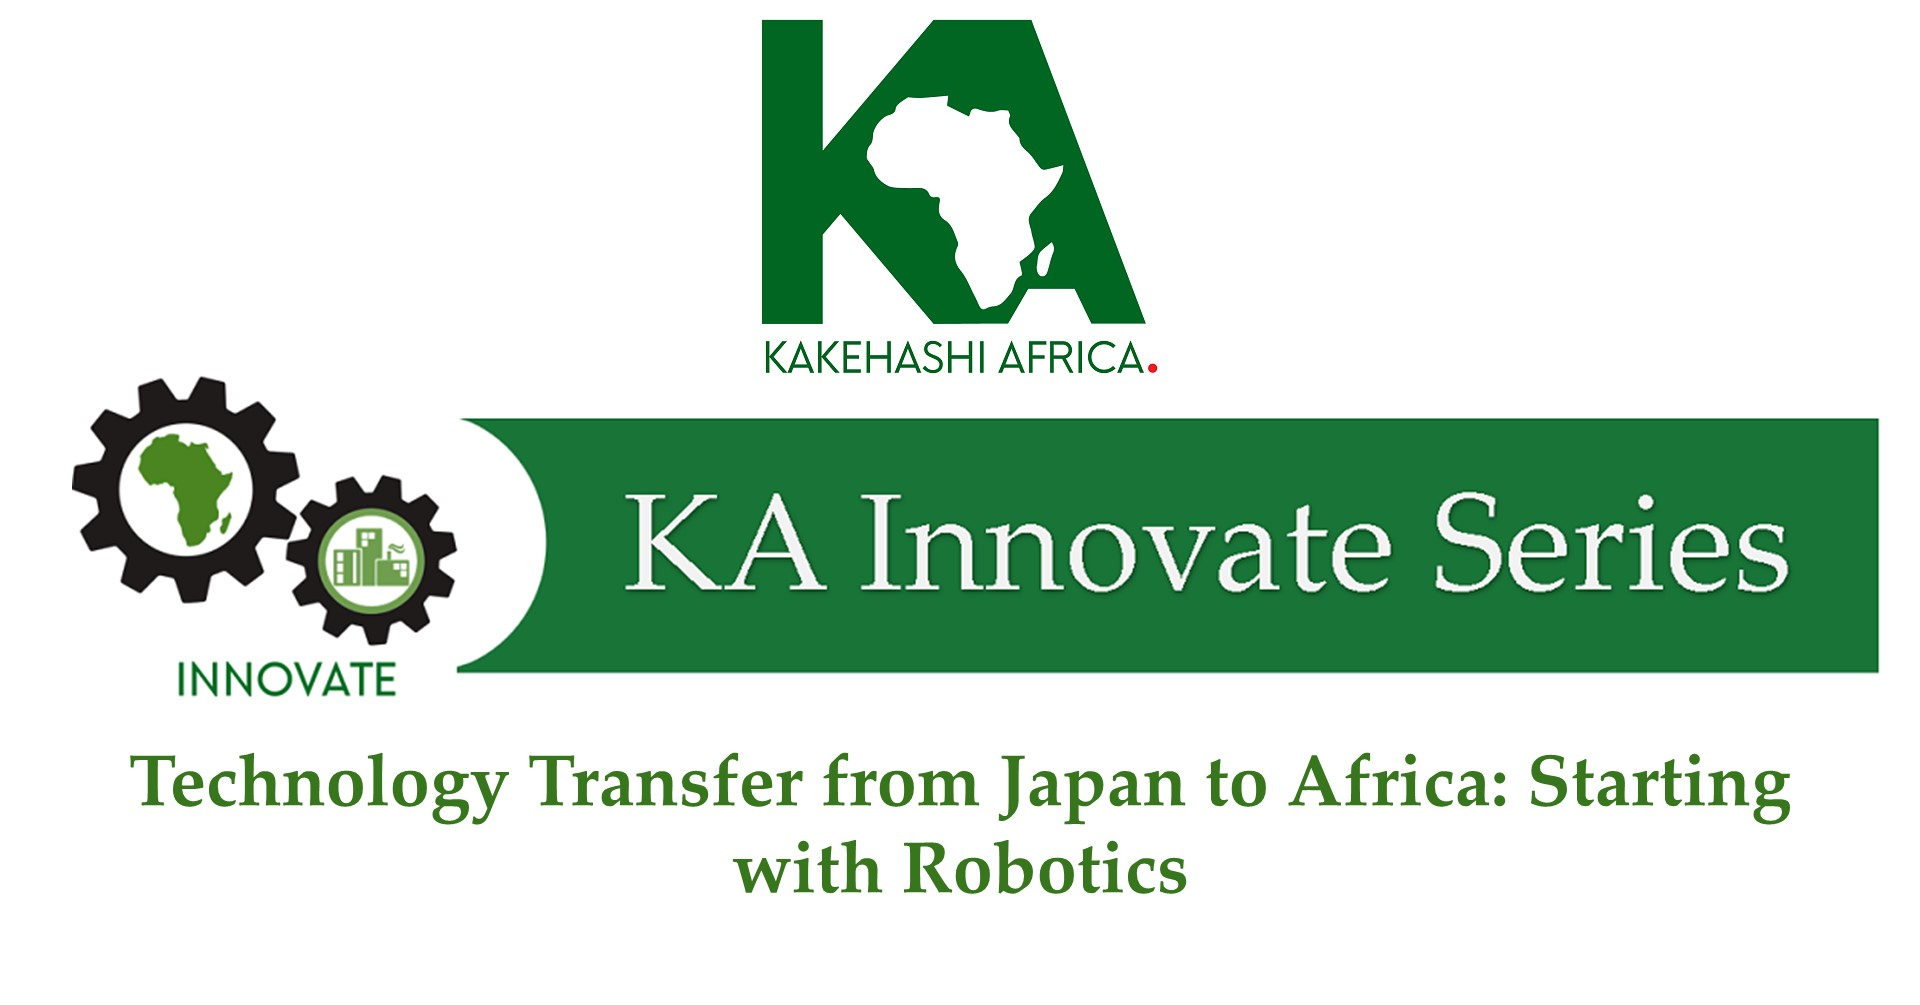 Webinar Report (Summary) – Technology Transfer from Japan to Africa: Starting with Robotics